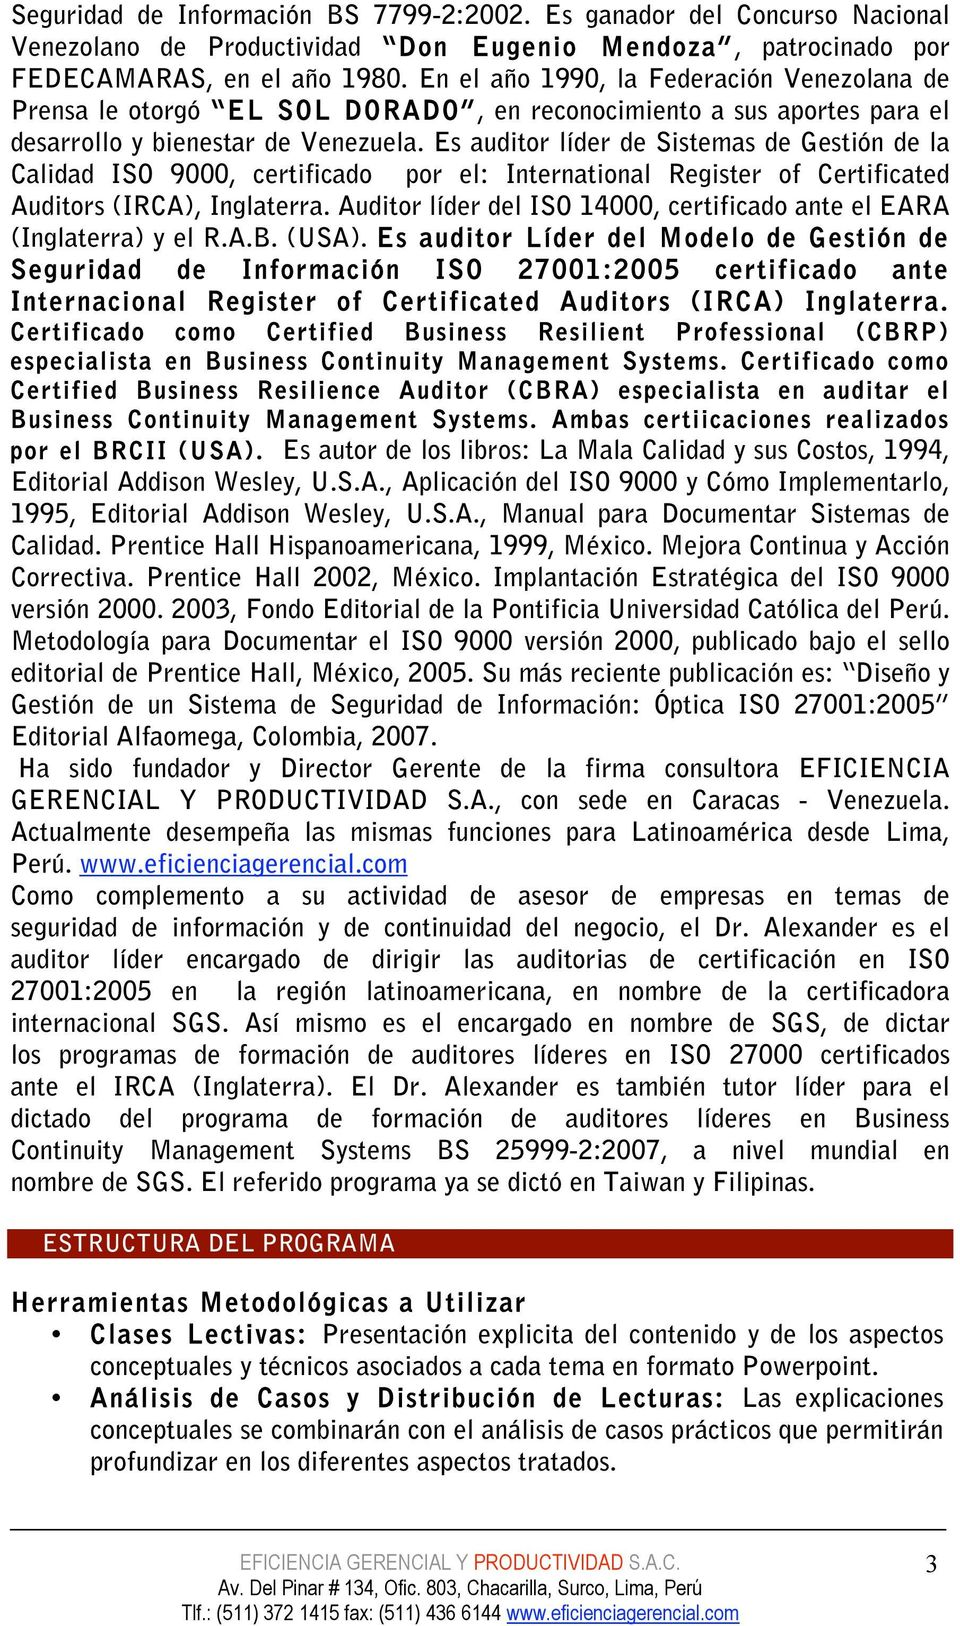 Es auditor líder de Sistemas de Gestión de la Calidad ISO 9000, certificado por el: International Register of Certificated Auditors (IRCA), Inglaterra.